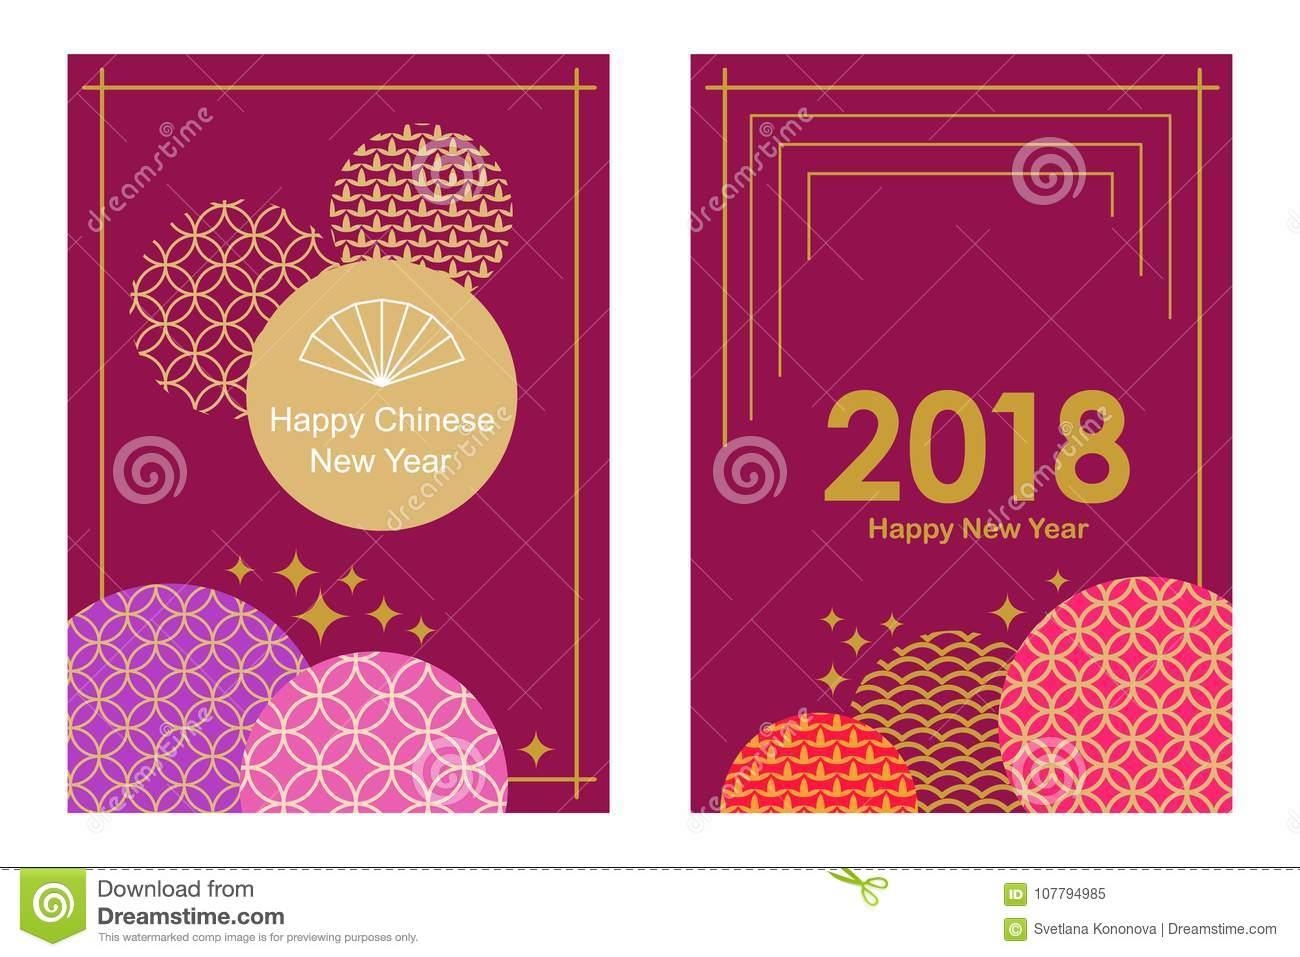 download happy chinese new year cards set colorful abstract geometric ornaments on purple background